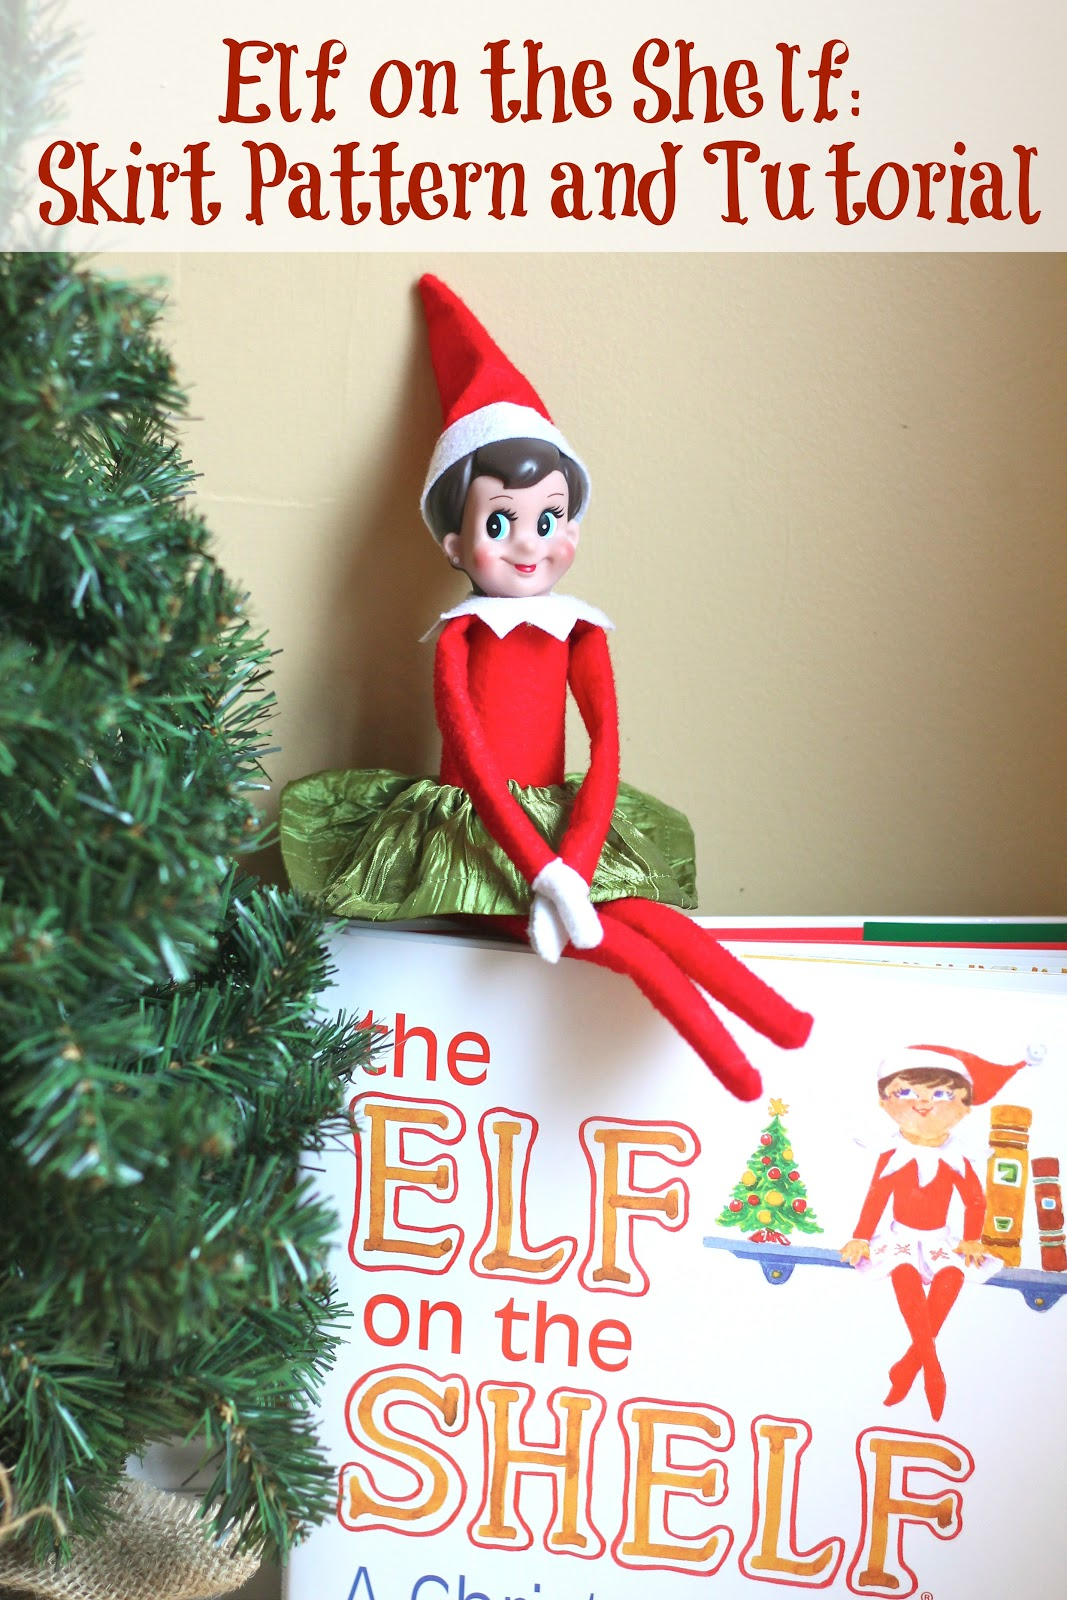 Free Knitting Patterns For Elf On The Shelf Clothes : Elf on the Shelf: Skirt Pattern and Tutorial ...